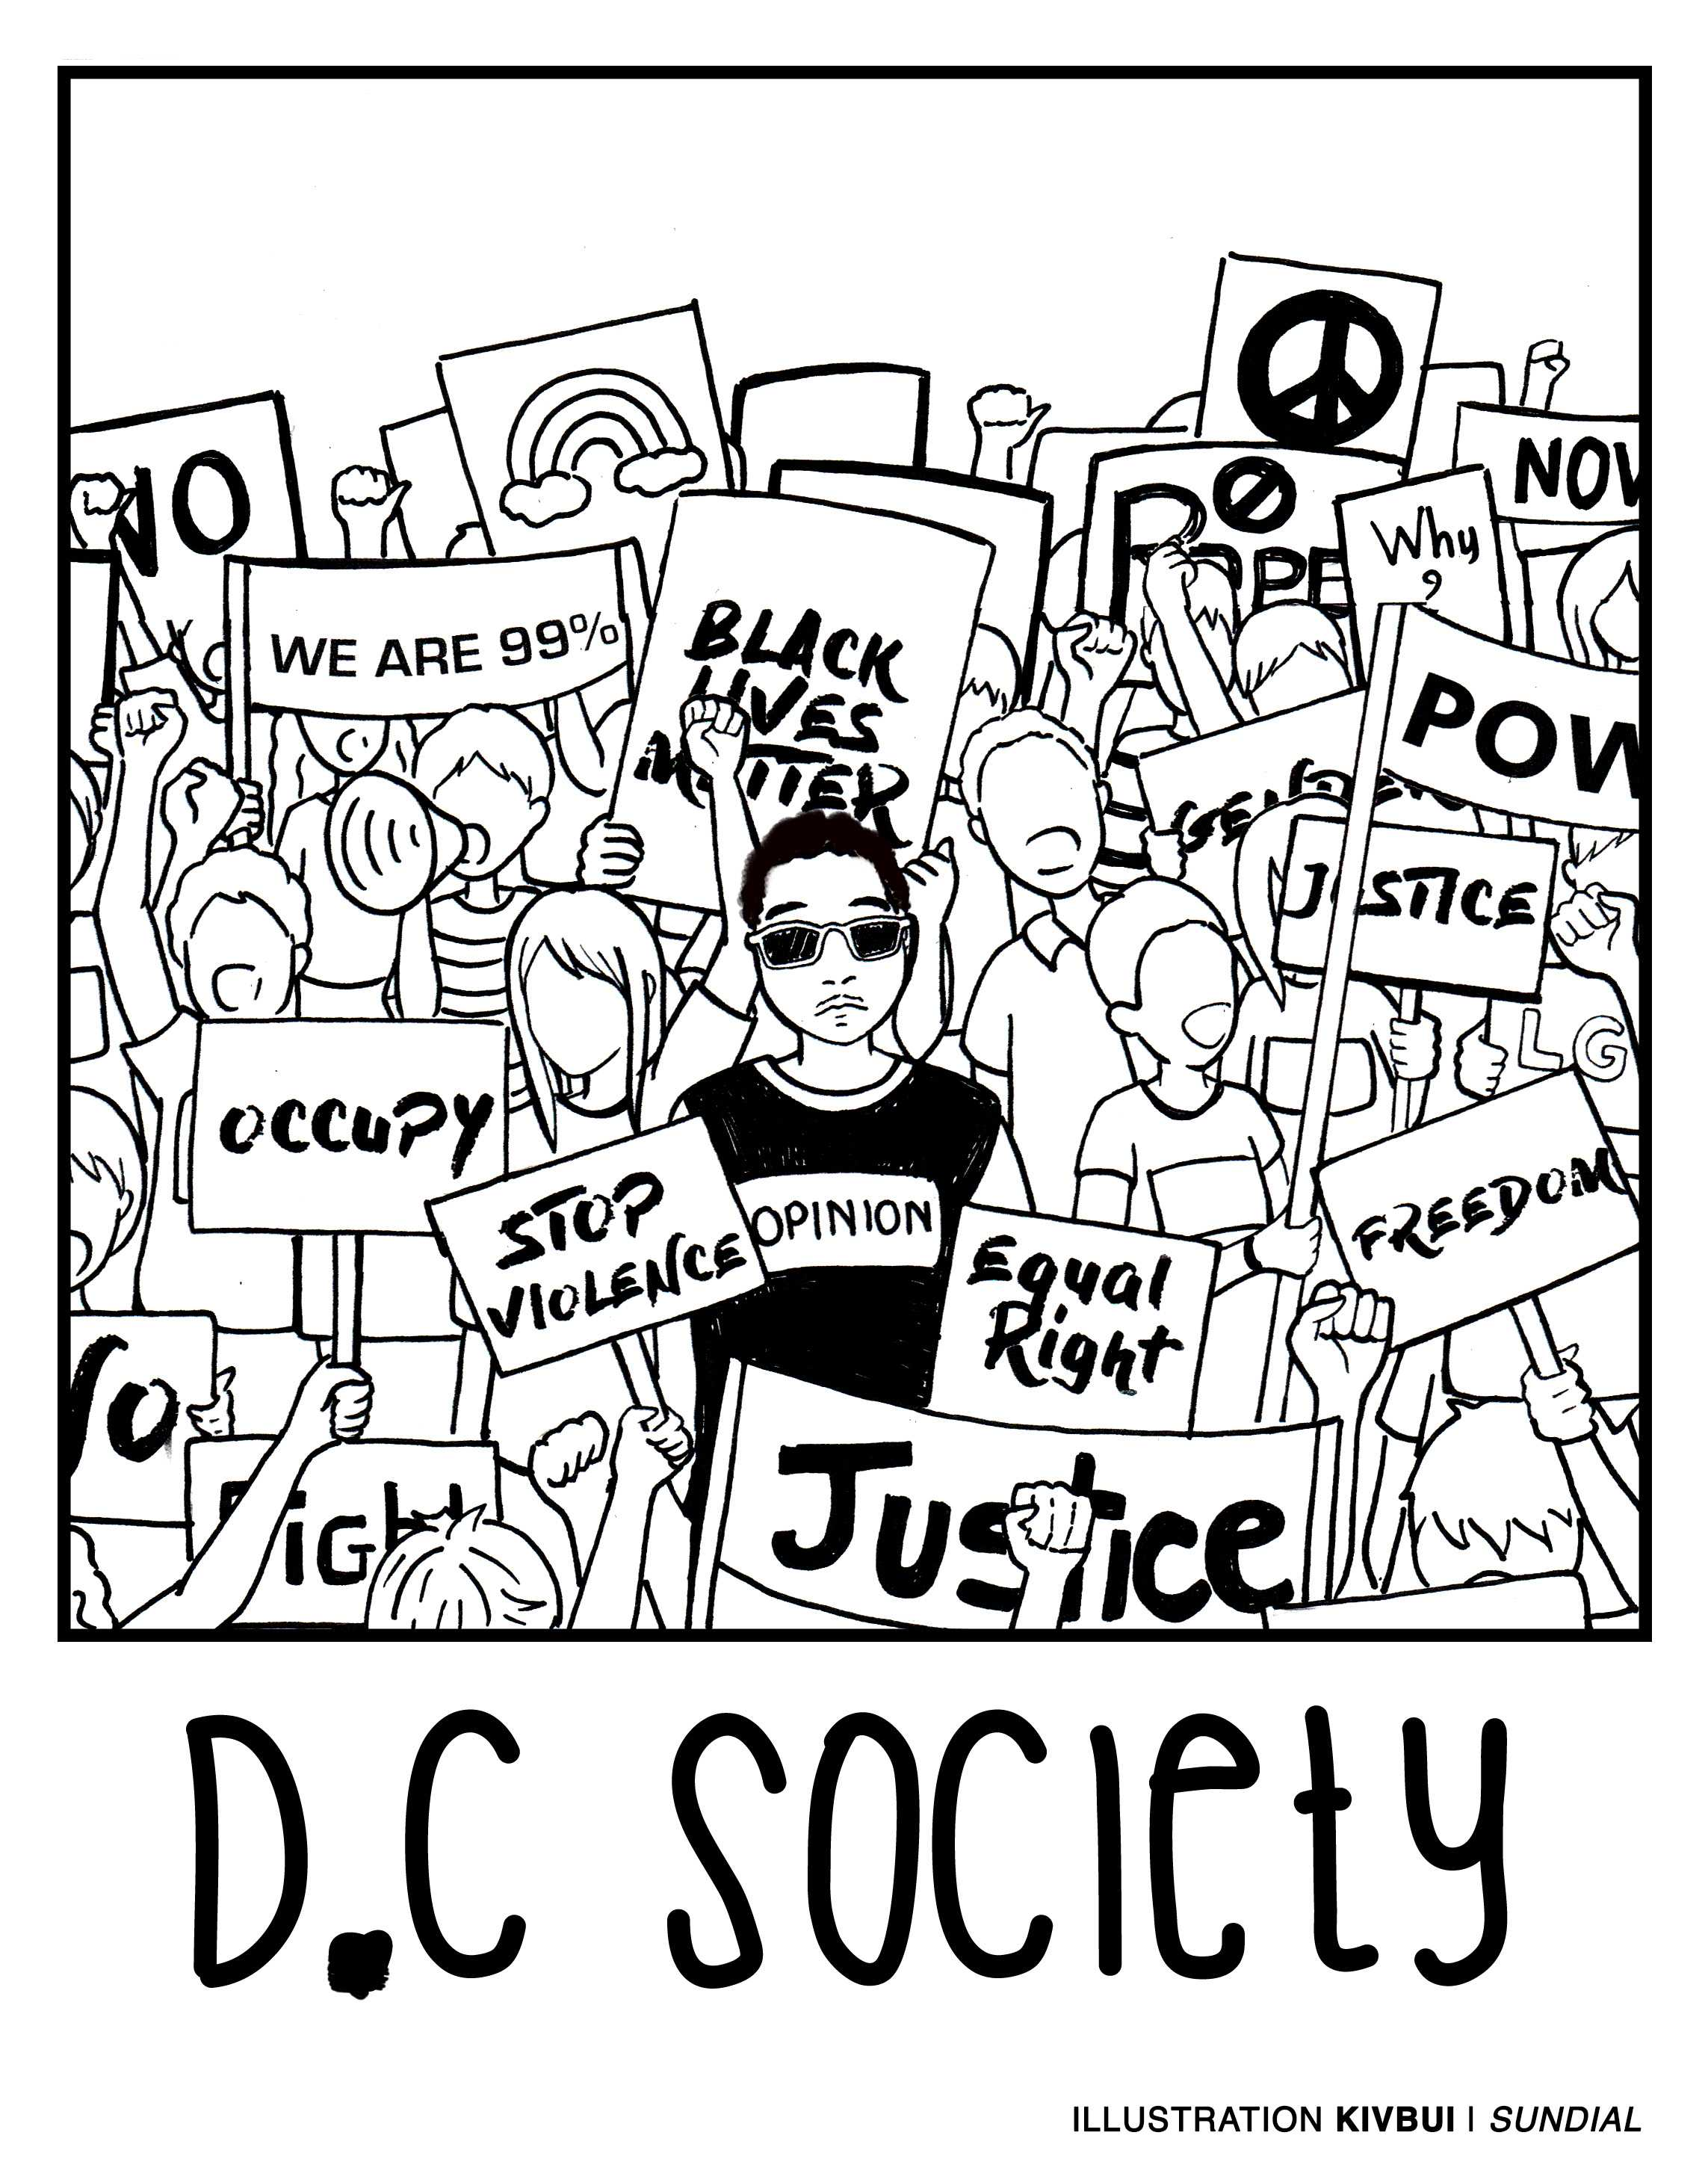 cartoon+shows+protest+with+%22D.C+society%22+written+below